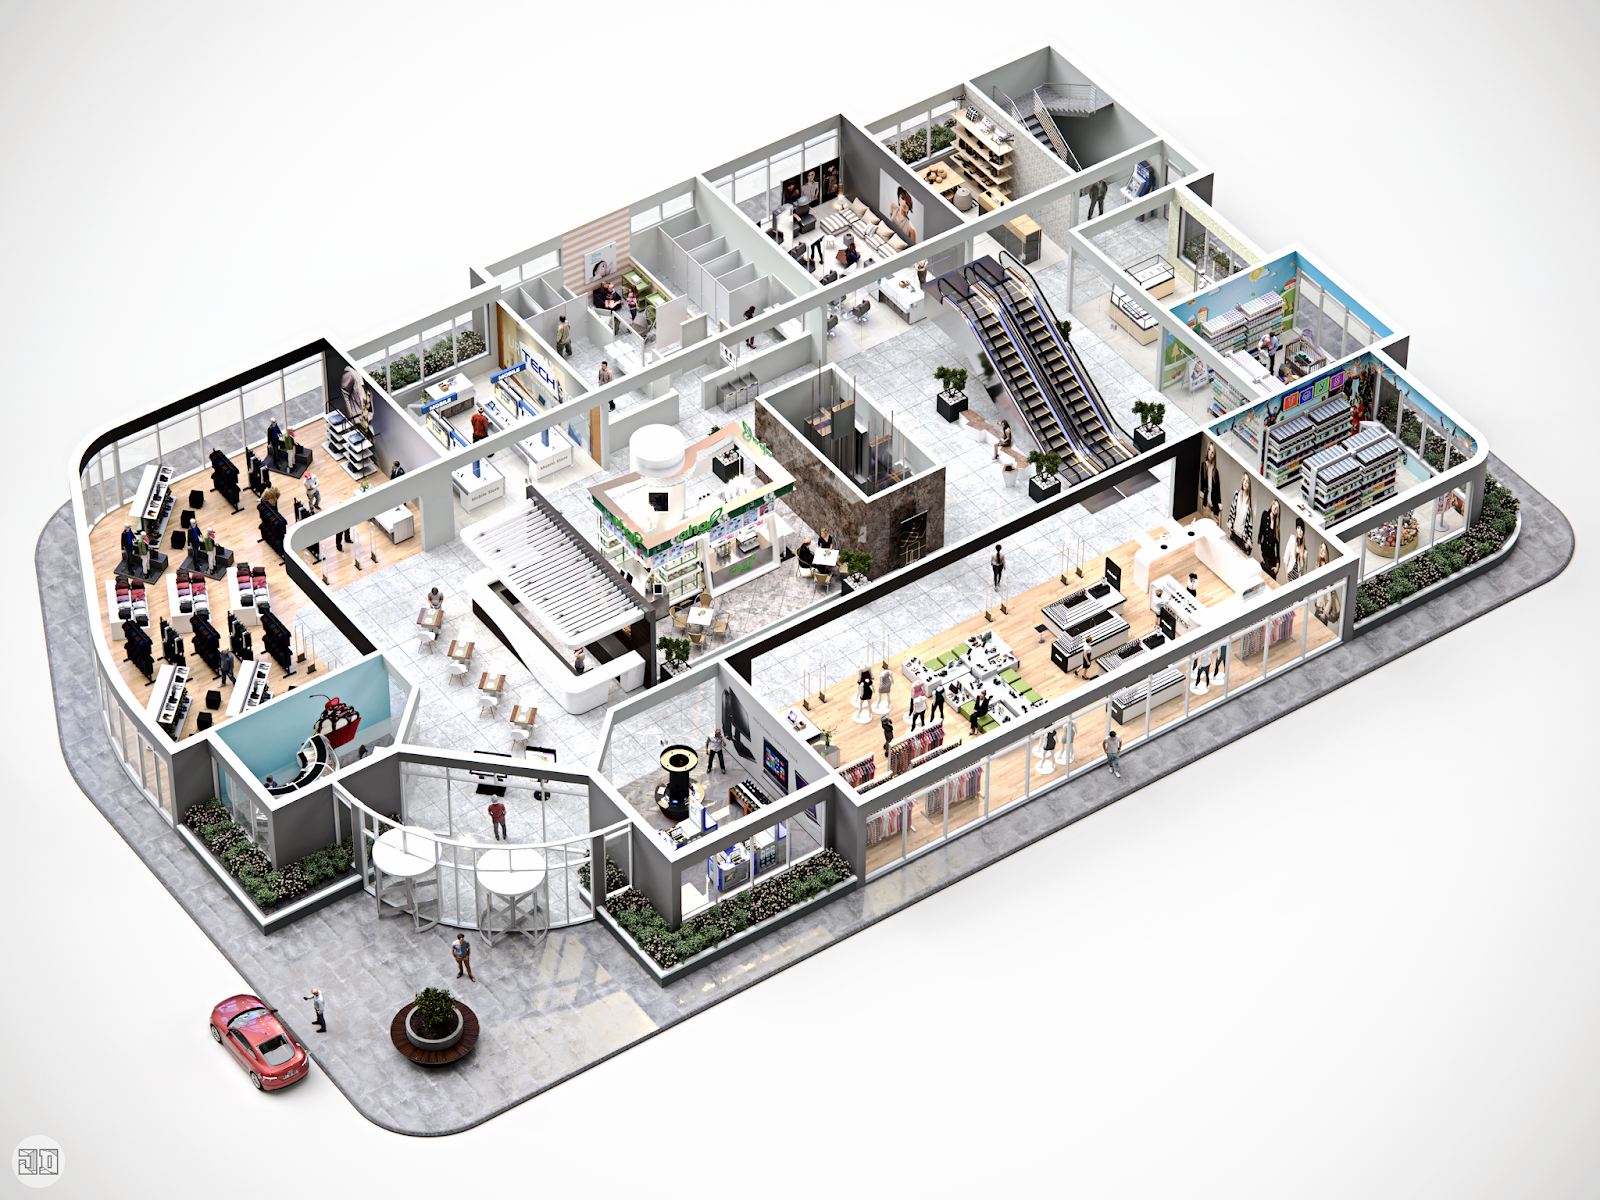 Shopping center conceptual 3d floor plan jericho domingo - Hotel design planning and development ebook ...